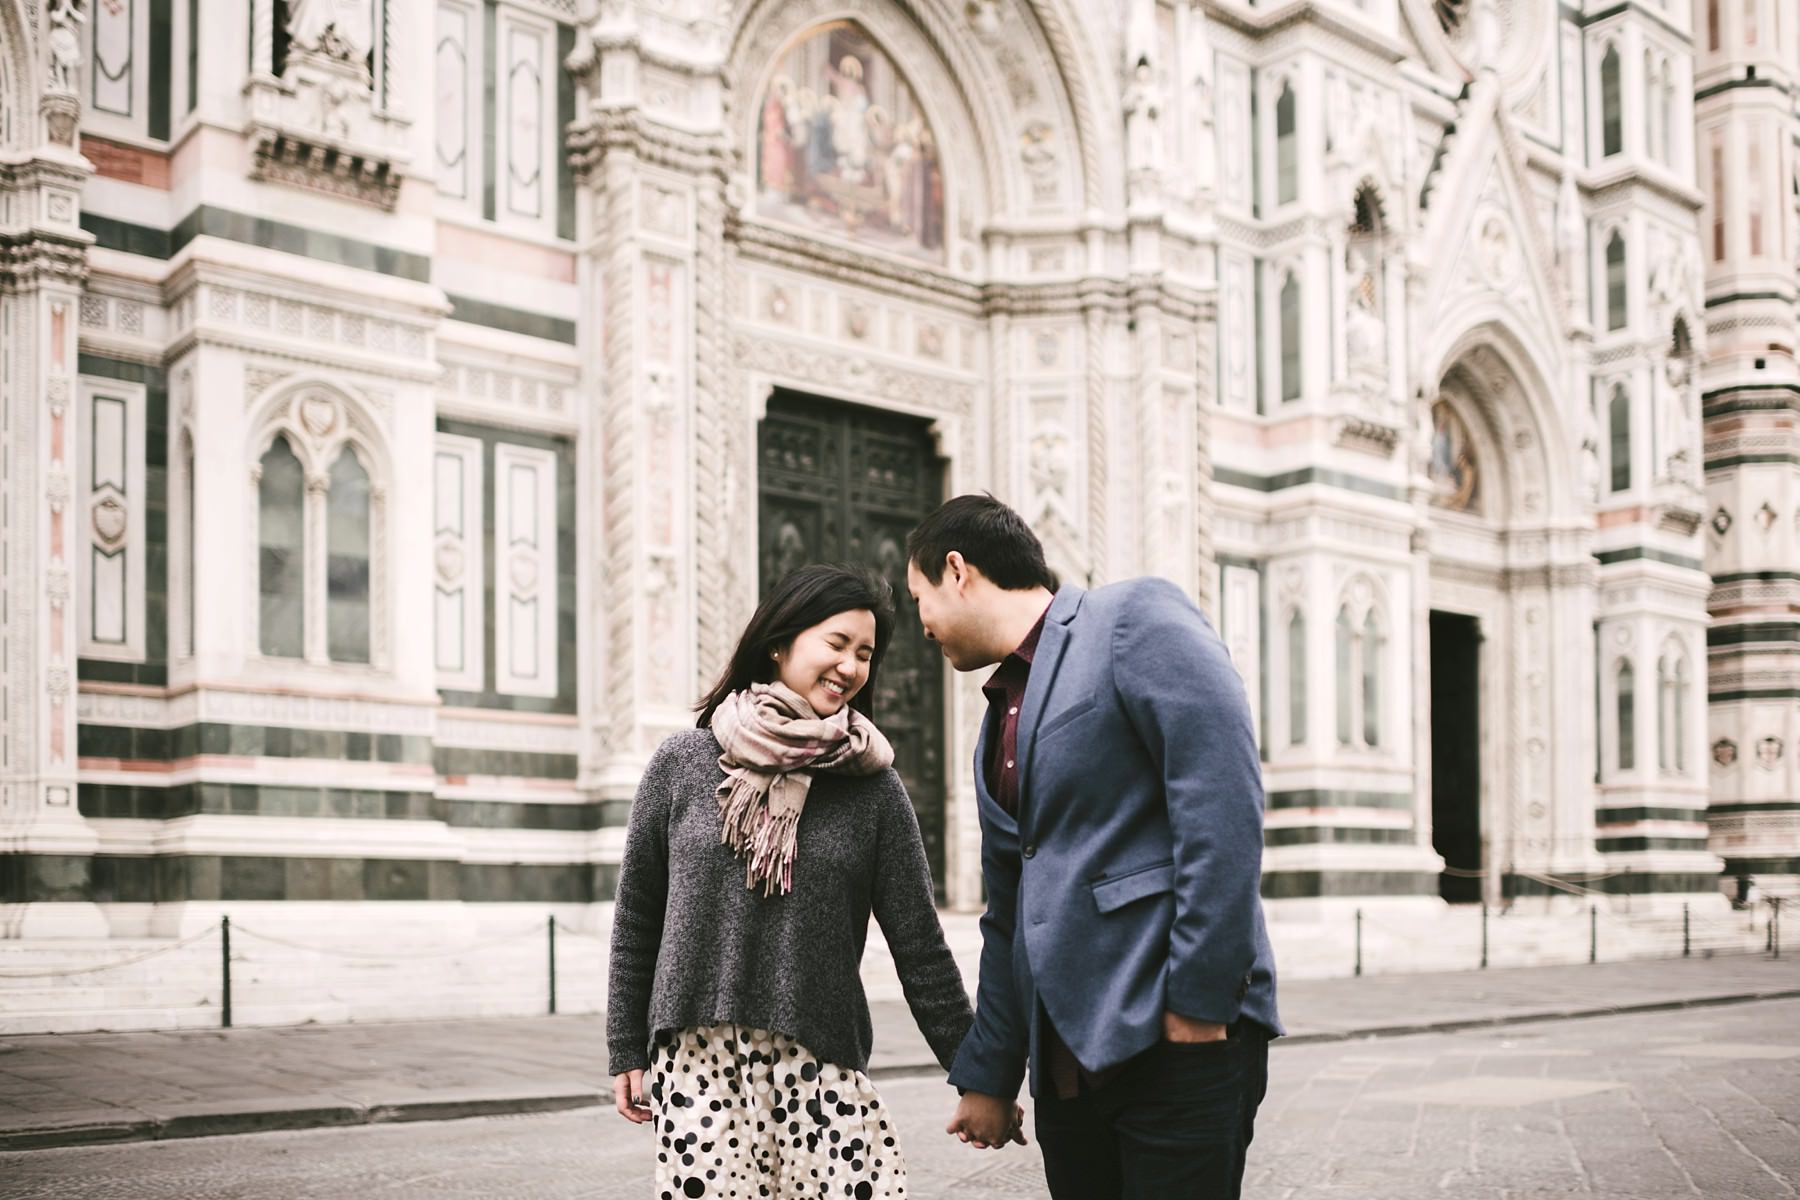 Lovely engagement pre-wedding photo. Sunrise walk tour in Florence near the Duomo with no crowds